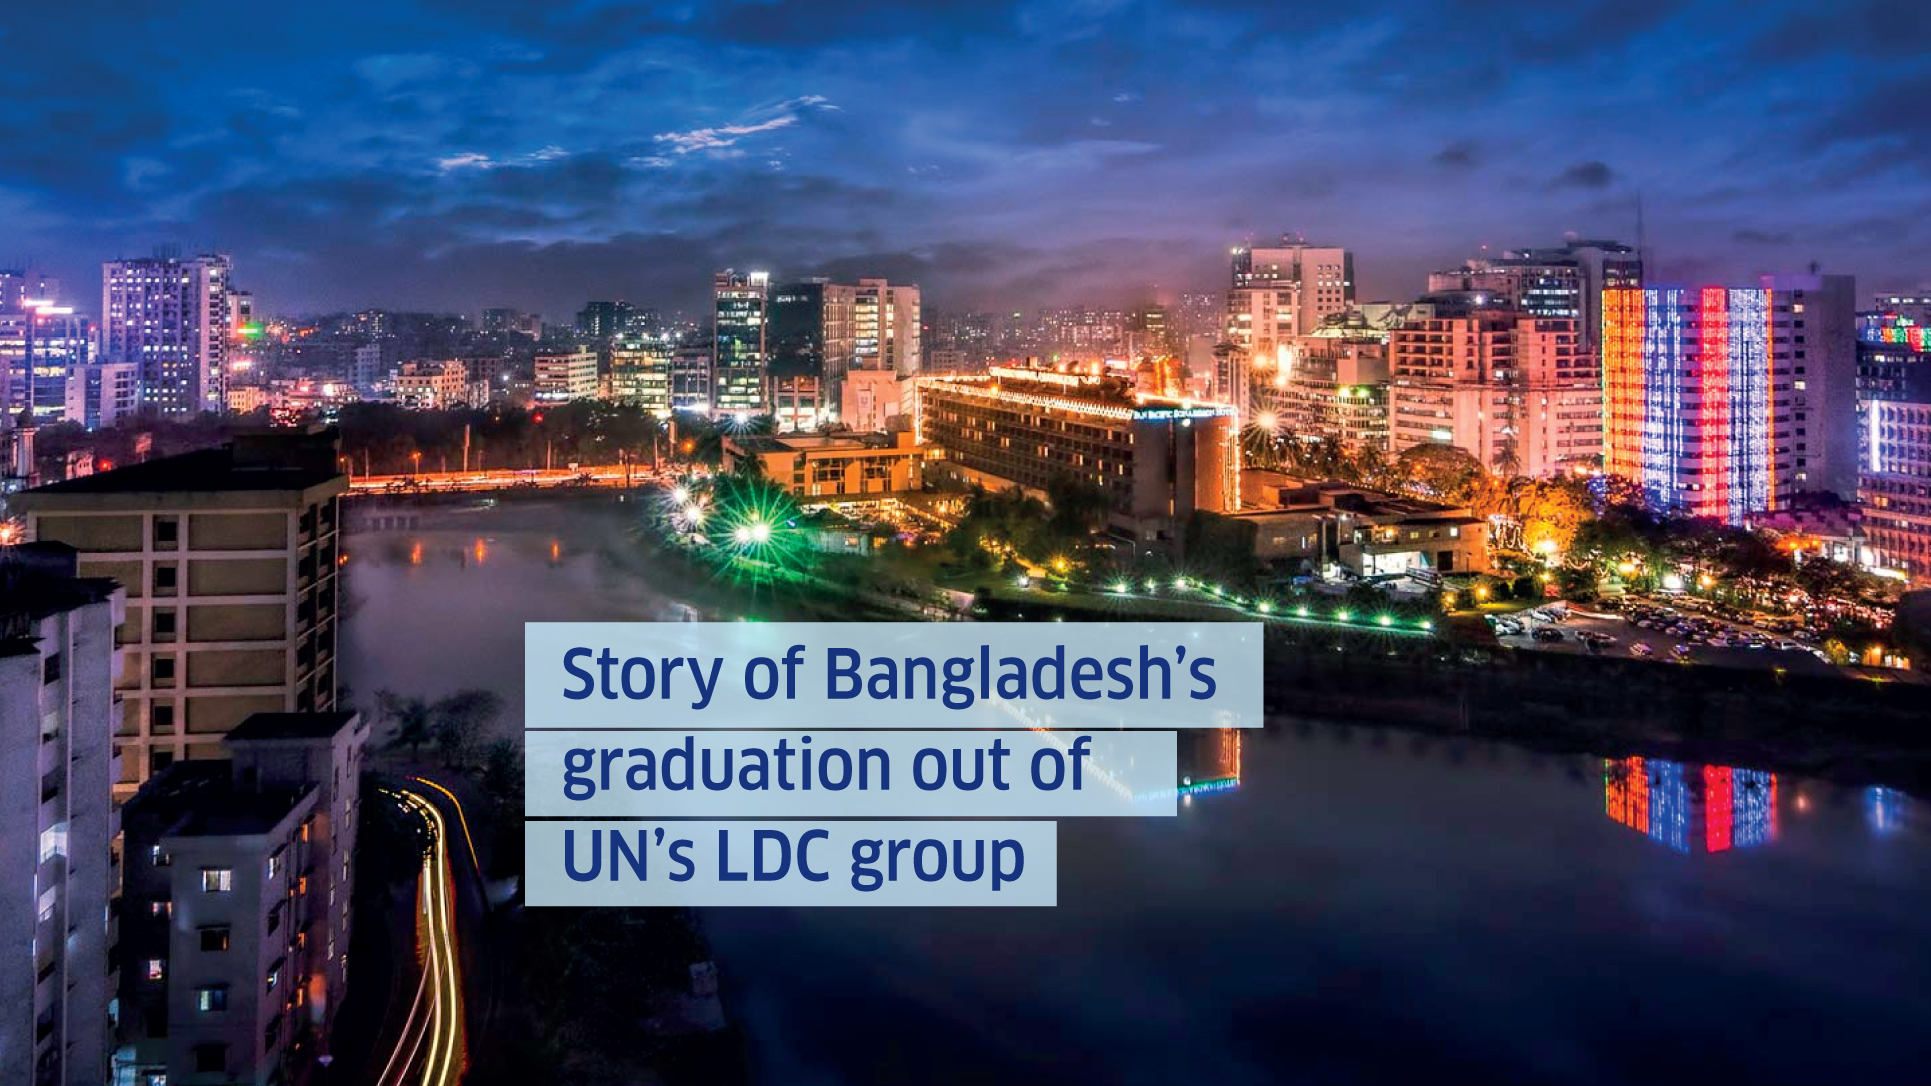 Story of Bangladesh's graduation out of UN's LDC group